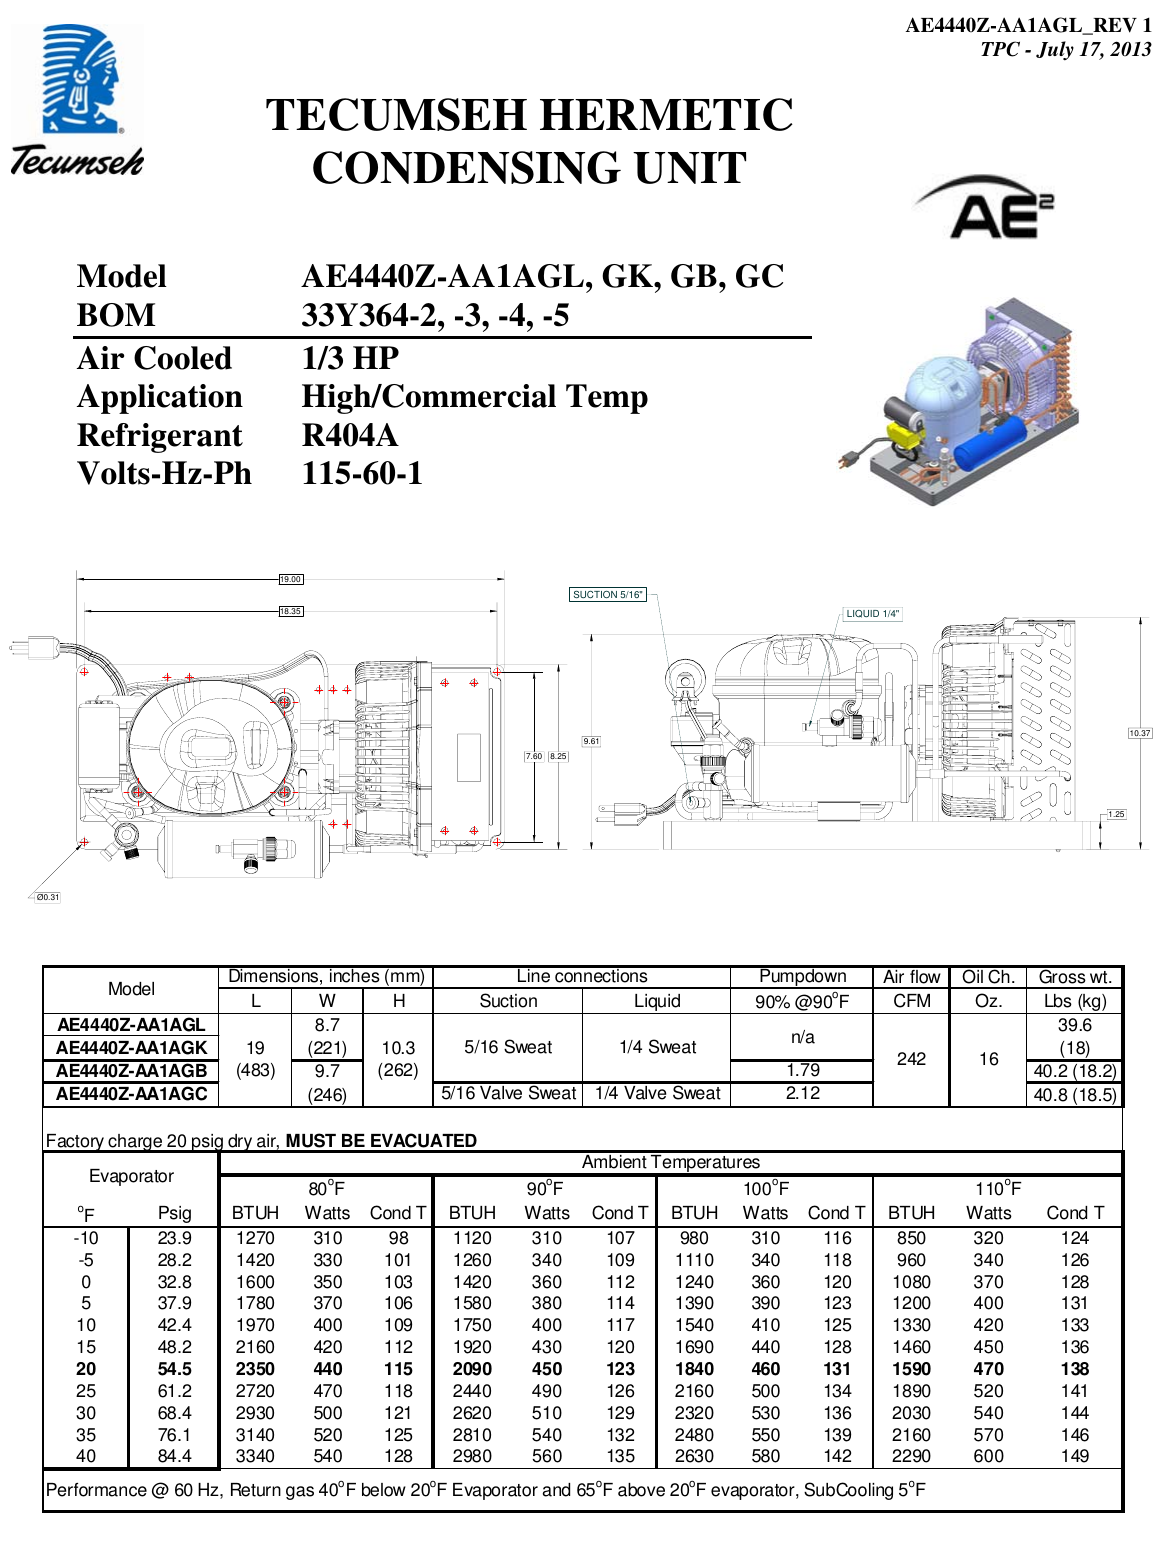 Teseh Hm80 Wiring Diagram Information Page 5 And Engines Small Engine Carburetor Migrant Resource Network Source Ae4440y Aa1a Series Mey 135